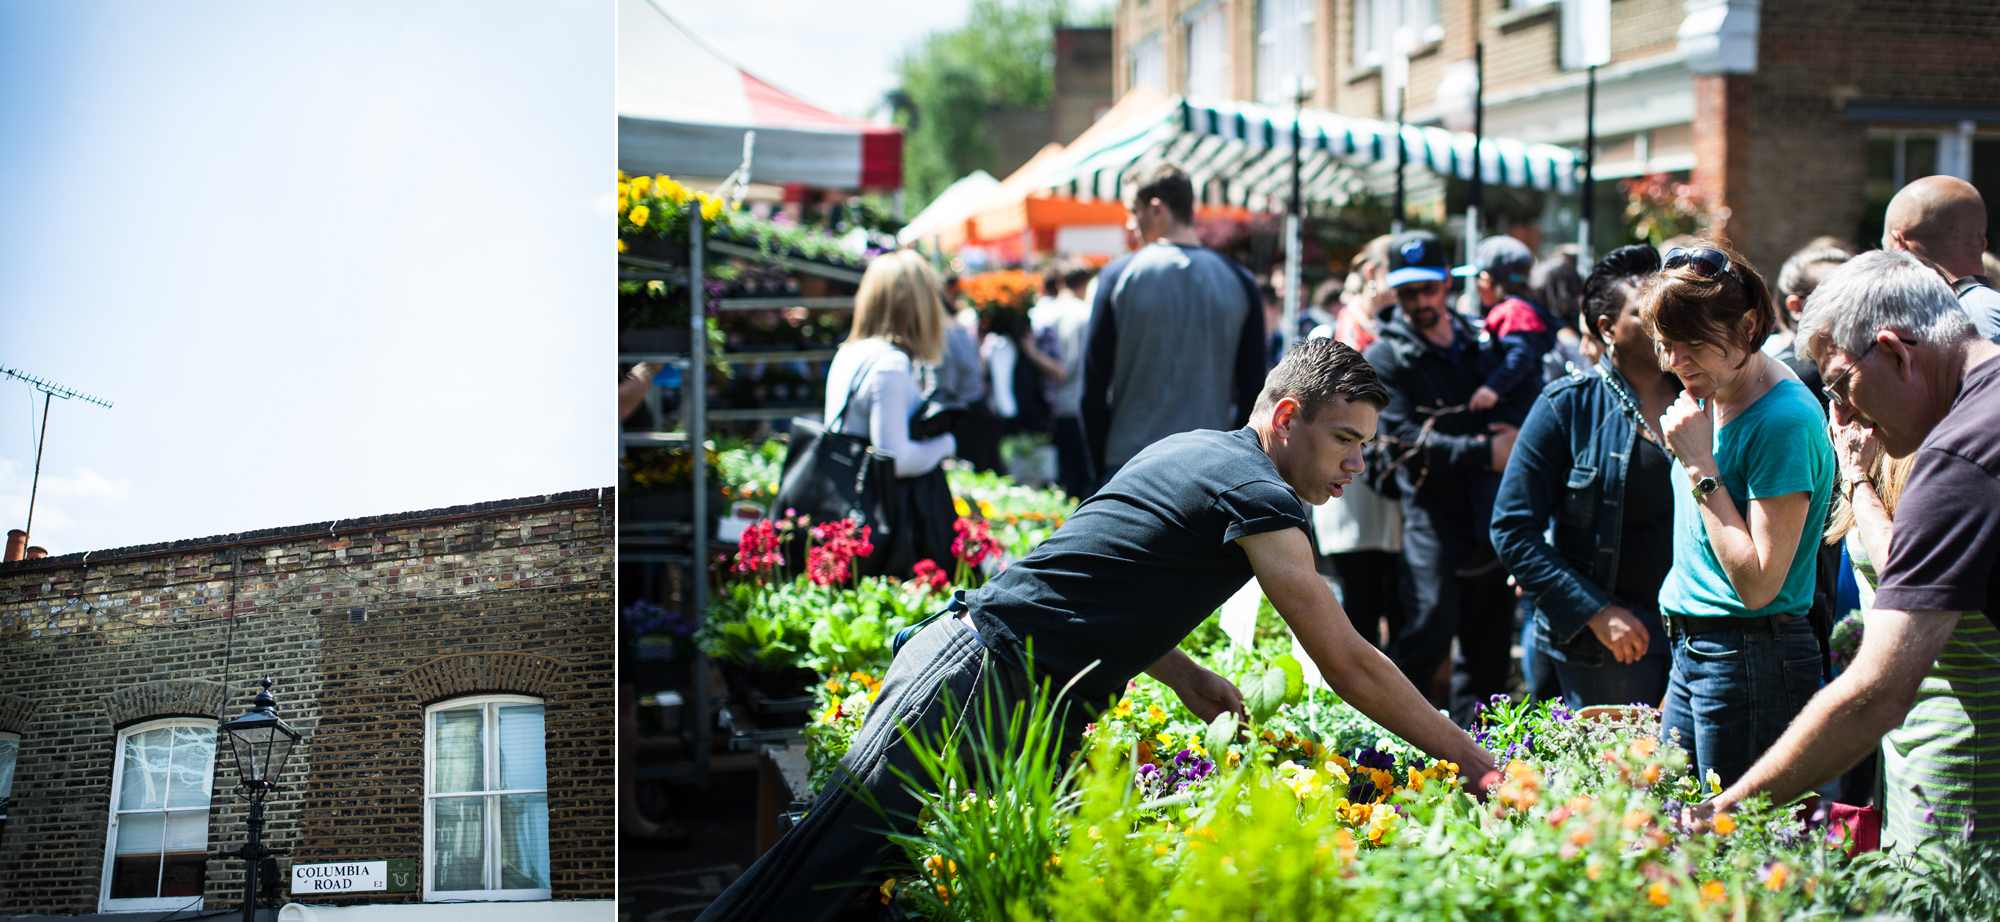 Hermione McCosh Photography - Columbia road flower market - editorial street photographer